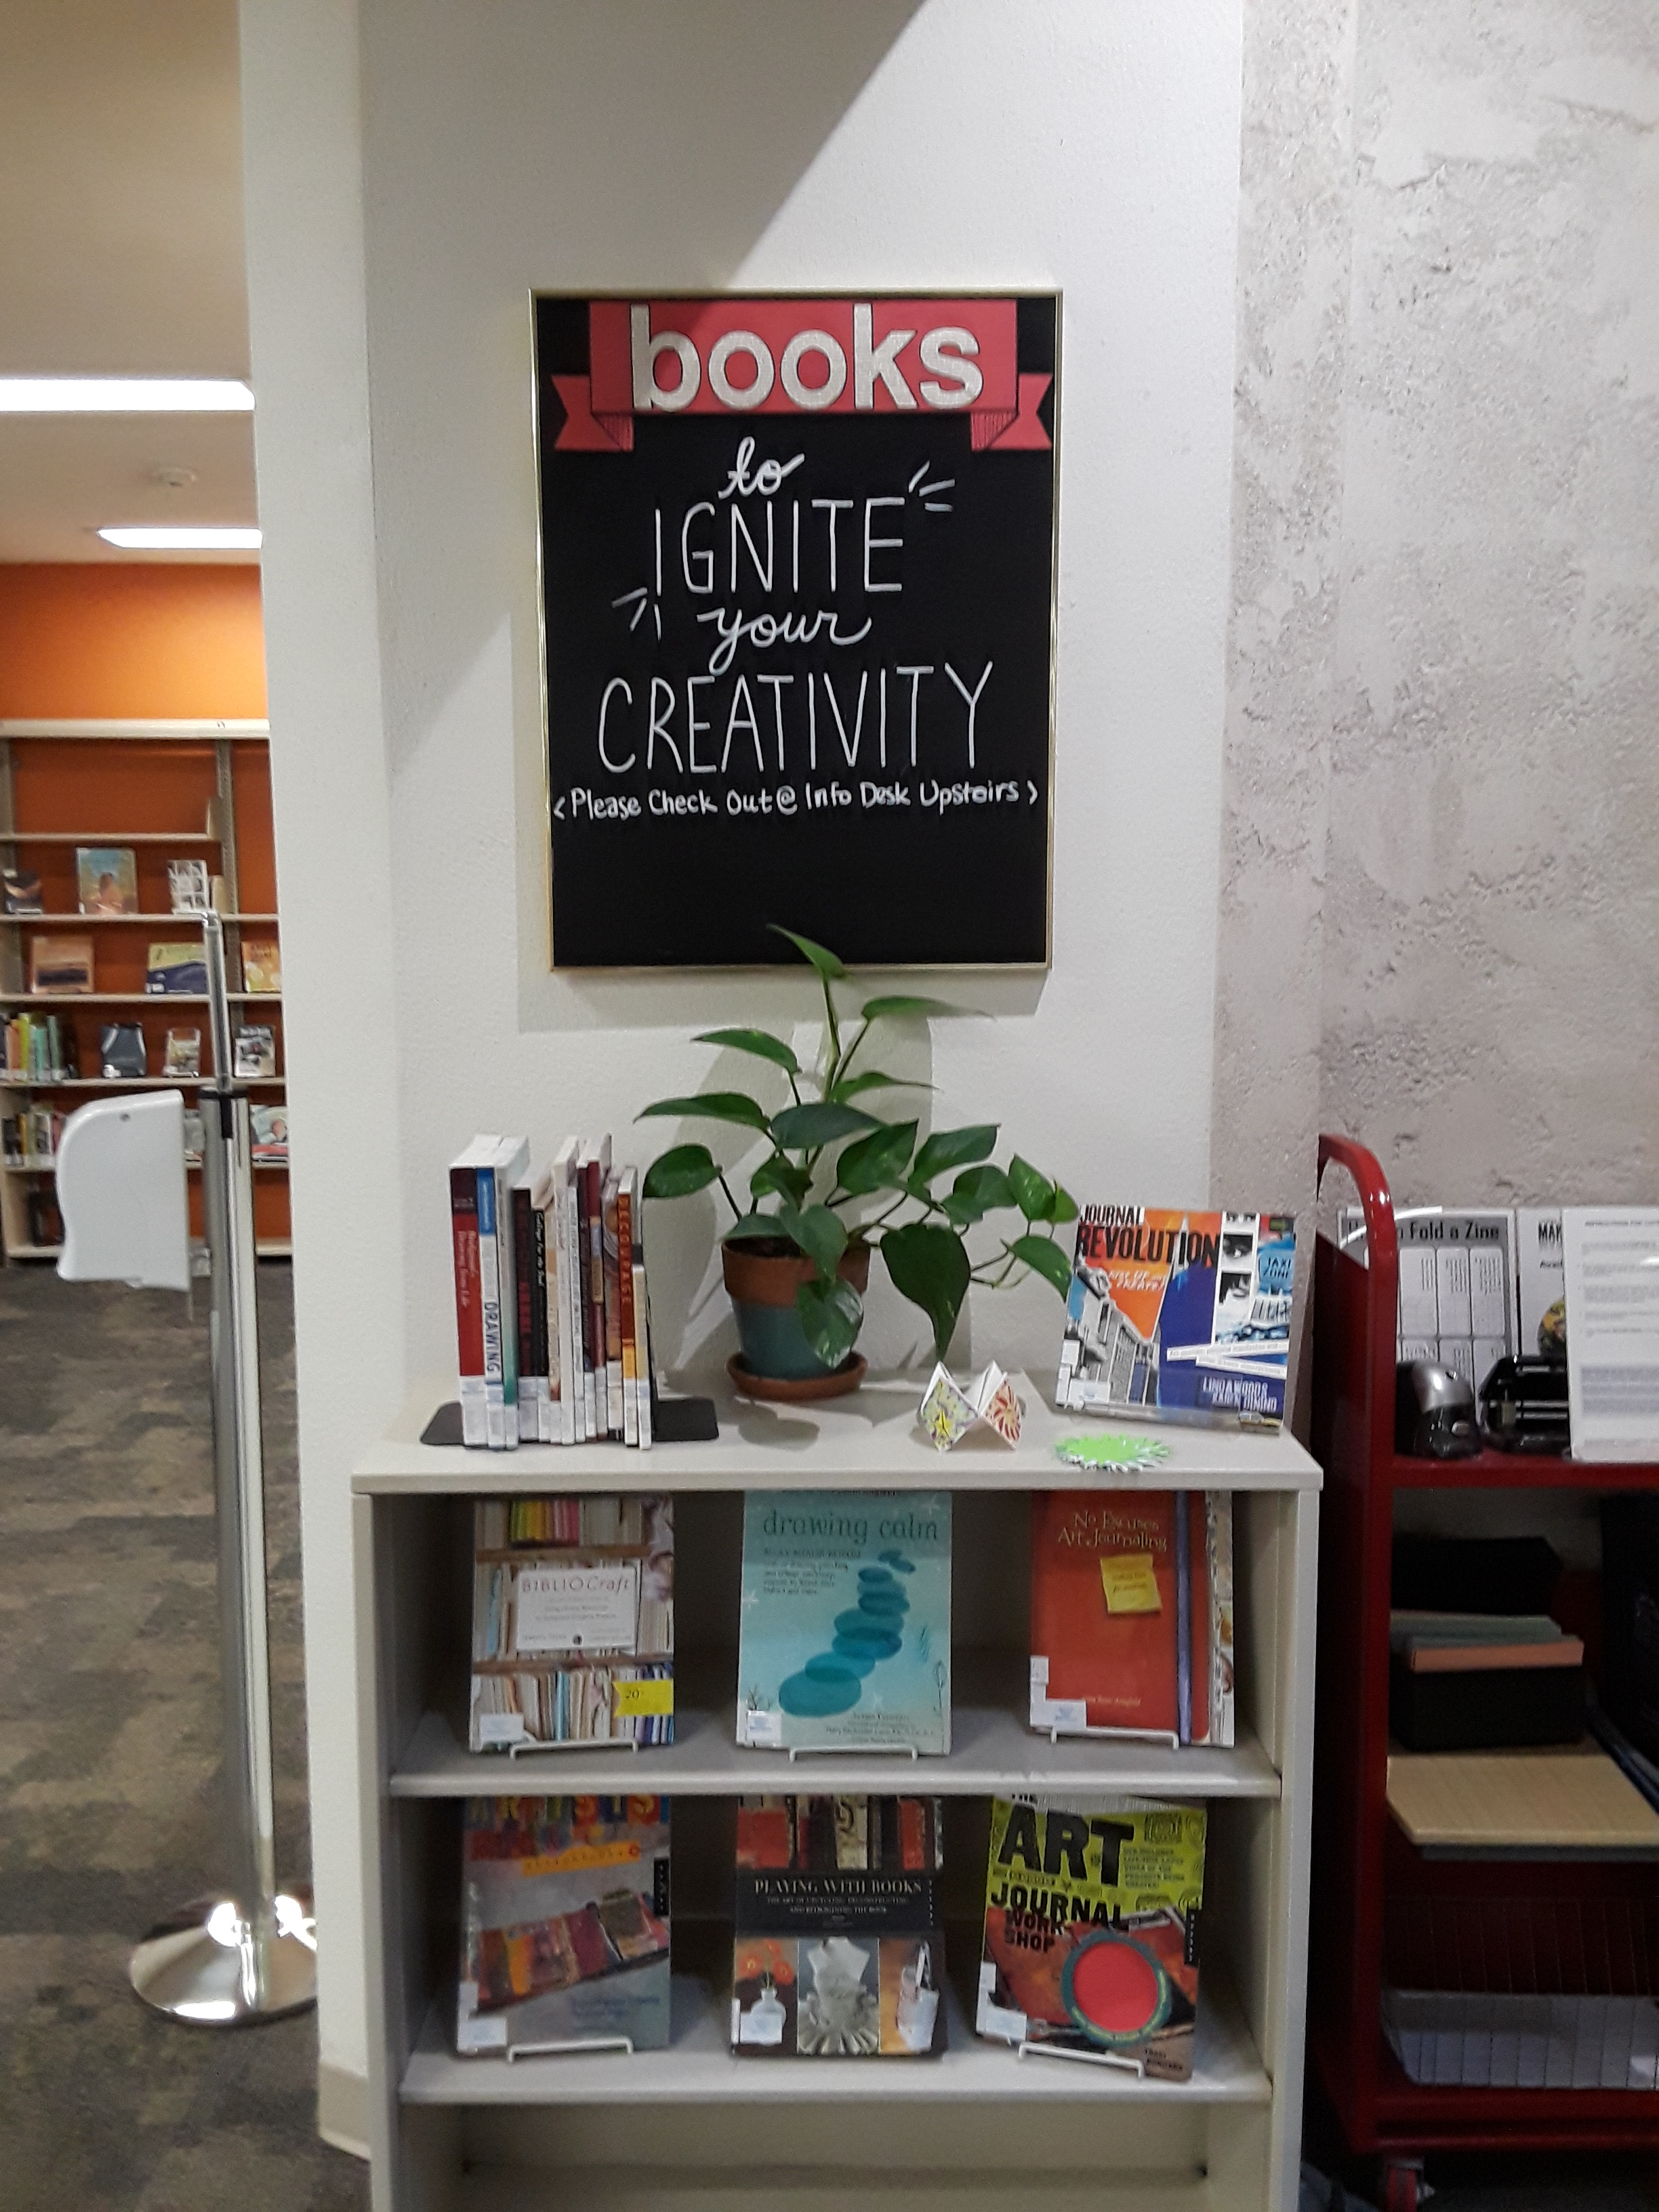 photo of bookshelf with creativity books on it